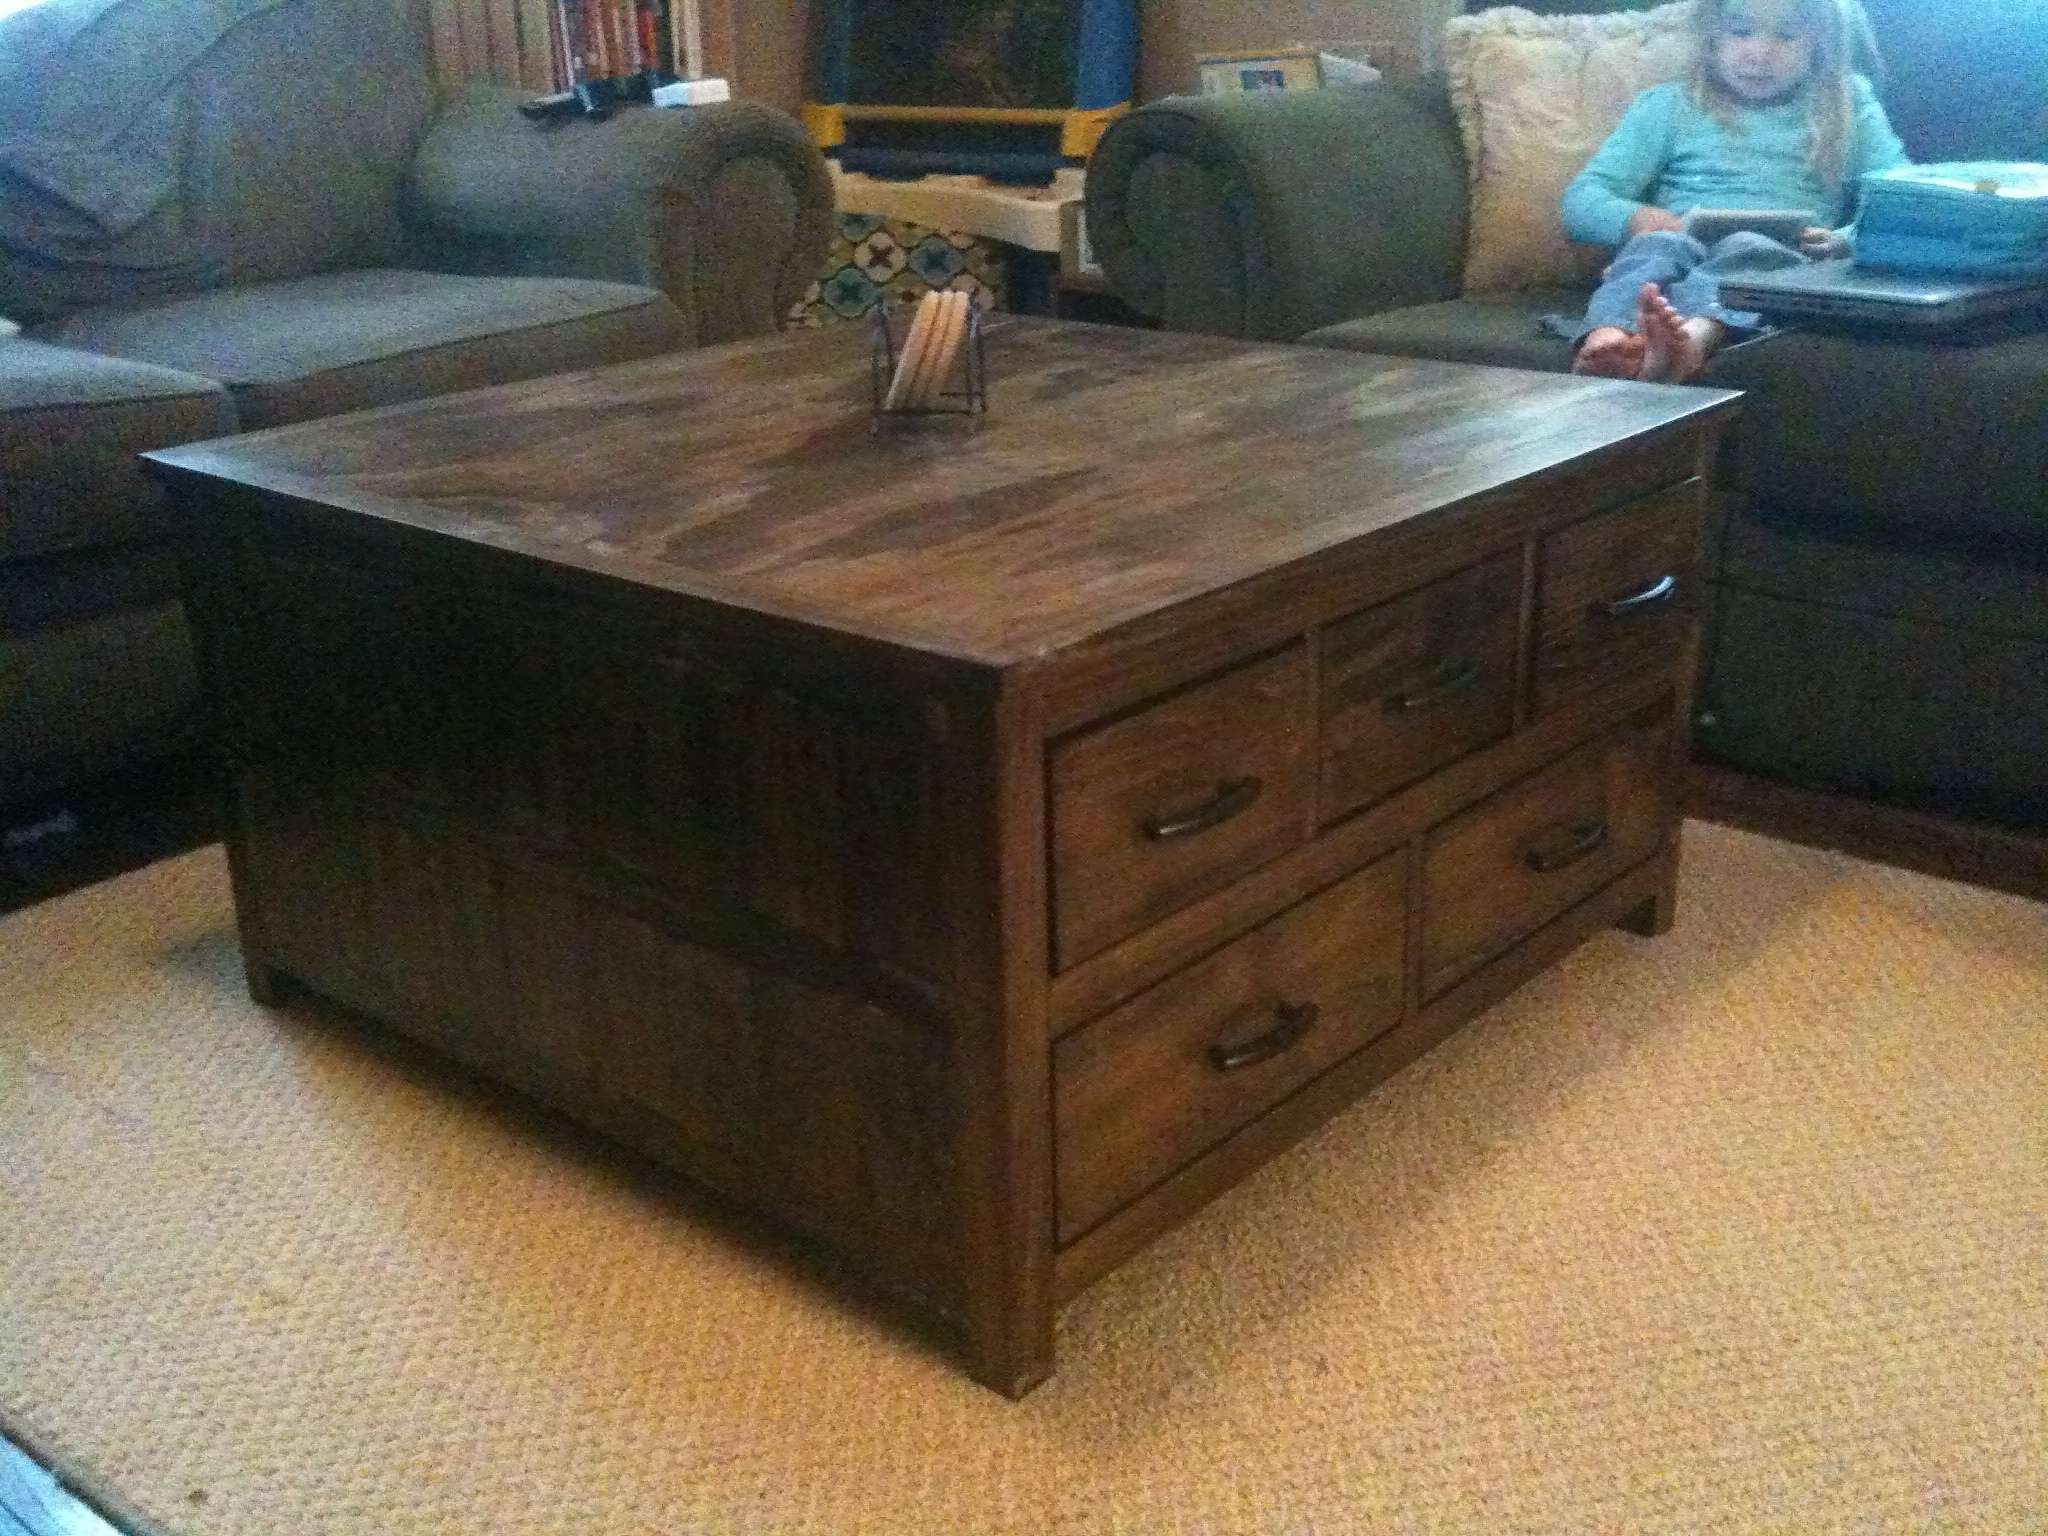 Well Known Coffee Table With Wicker Basket Storage Regarding Awesome Design Coffee Table With Storage (View 18 of 20)